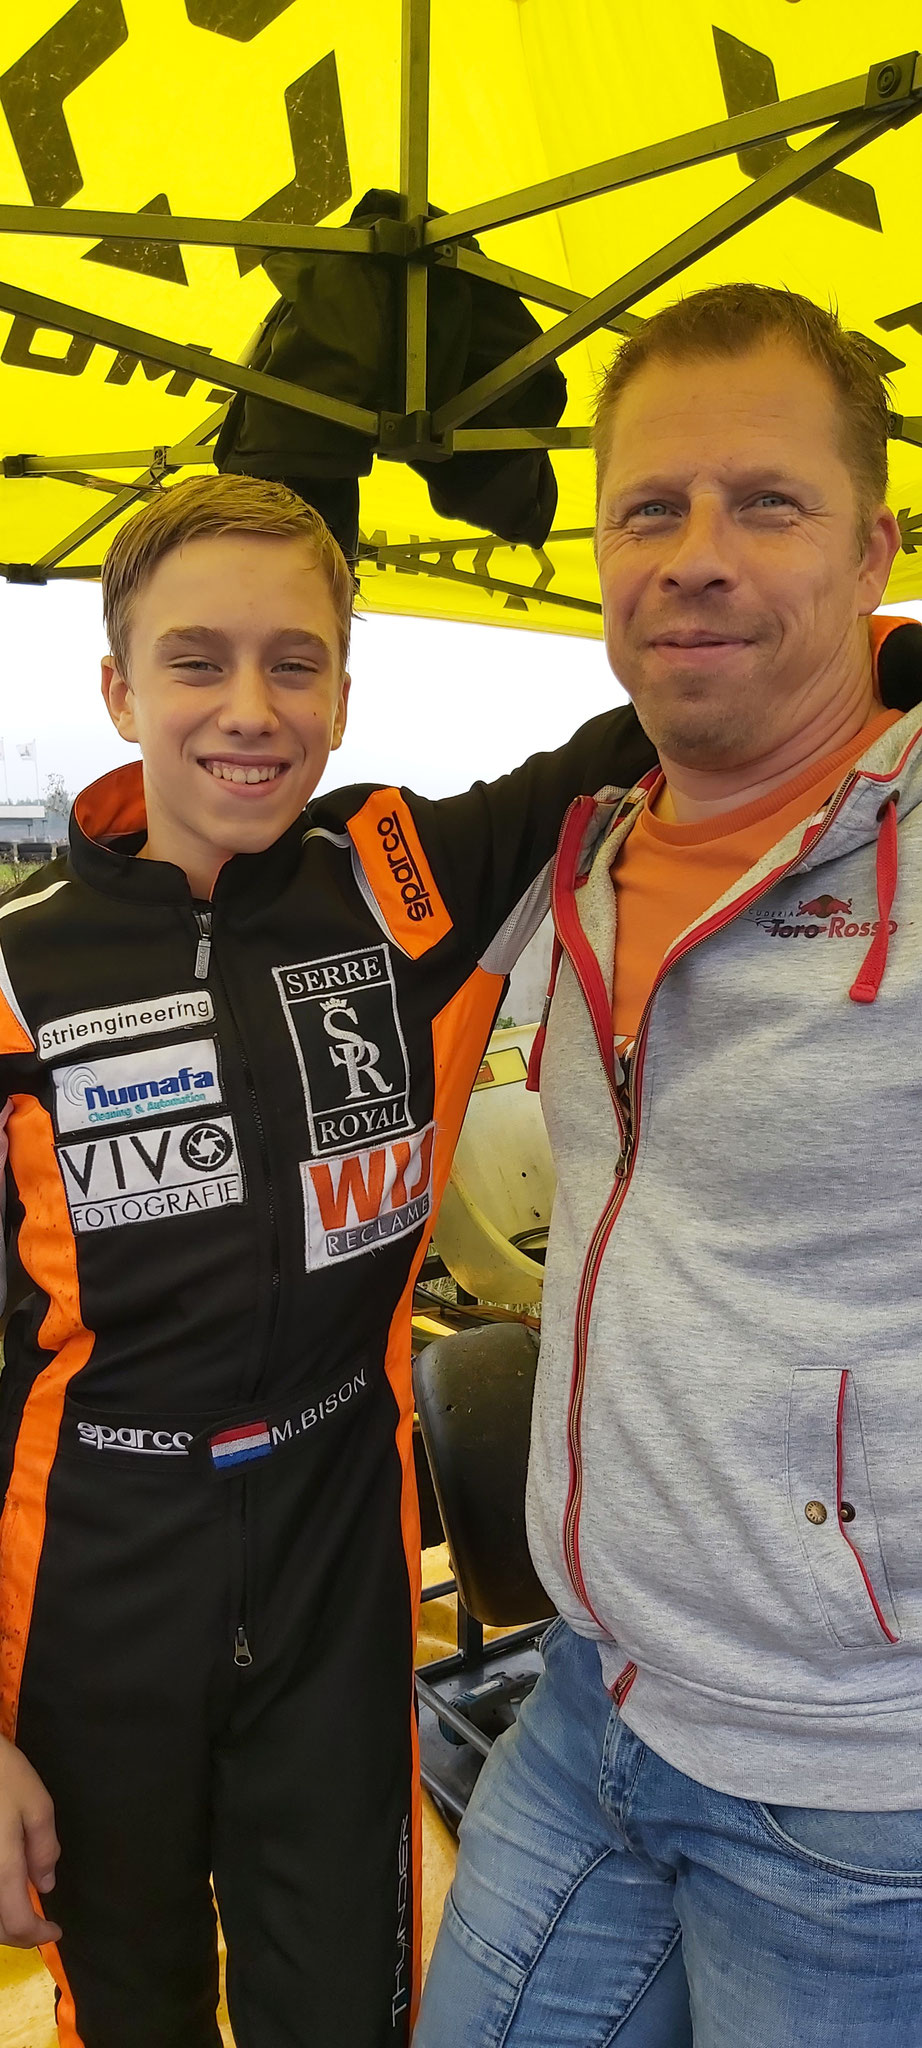 me and my mechanic dad